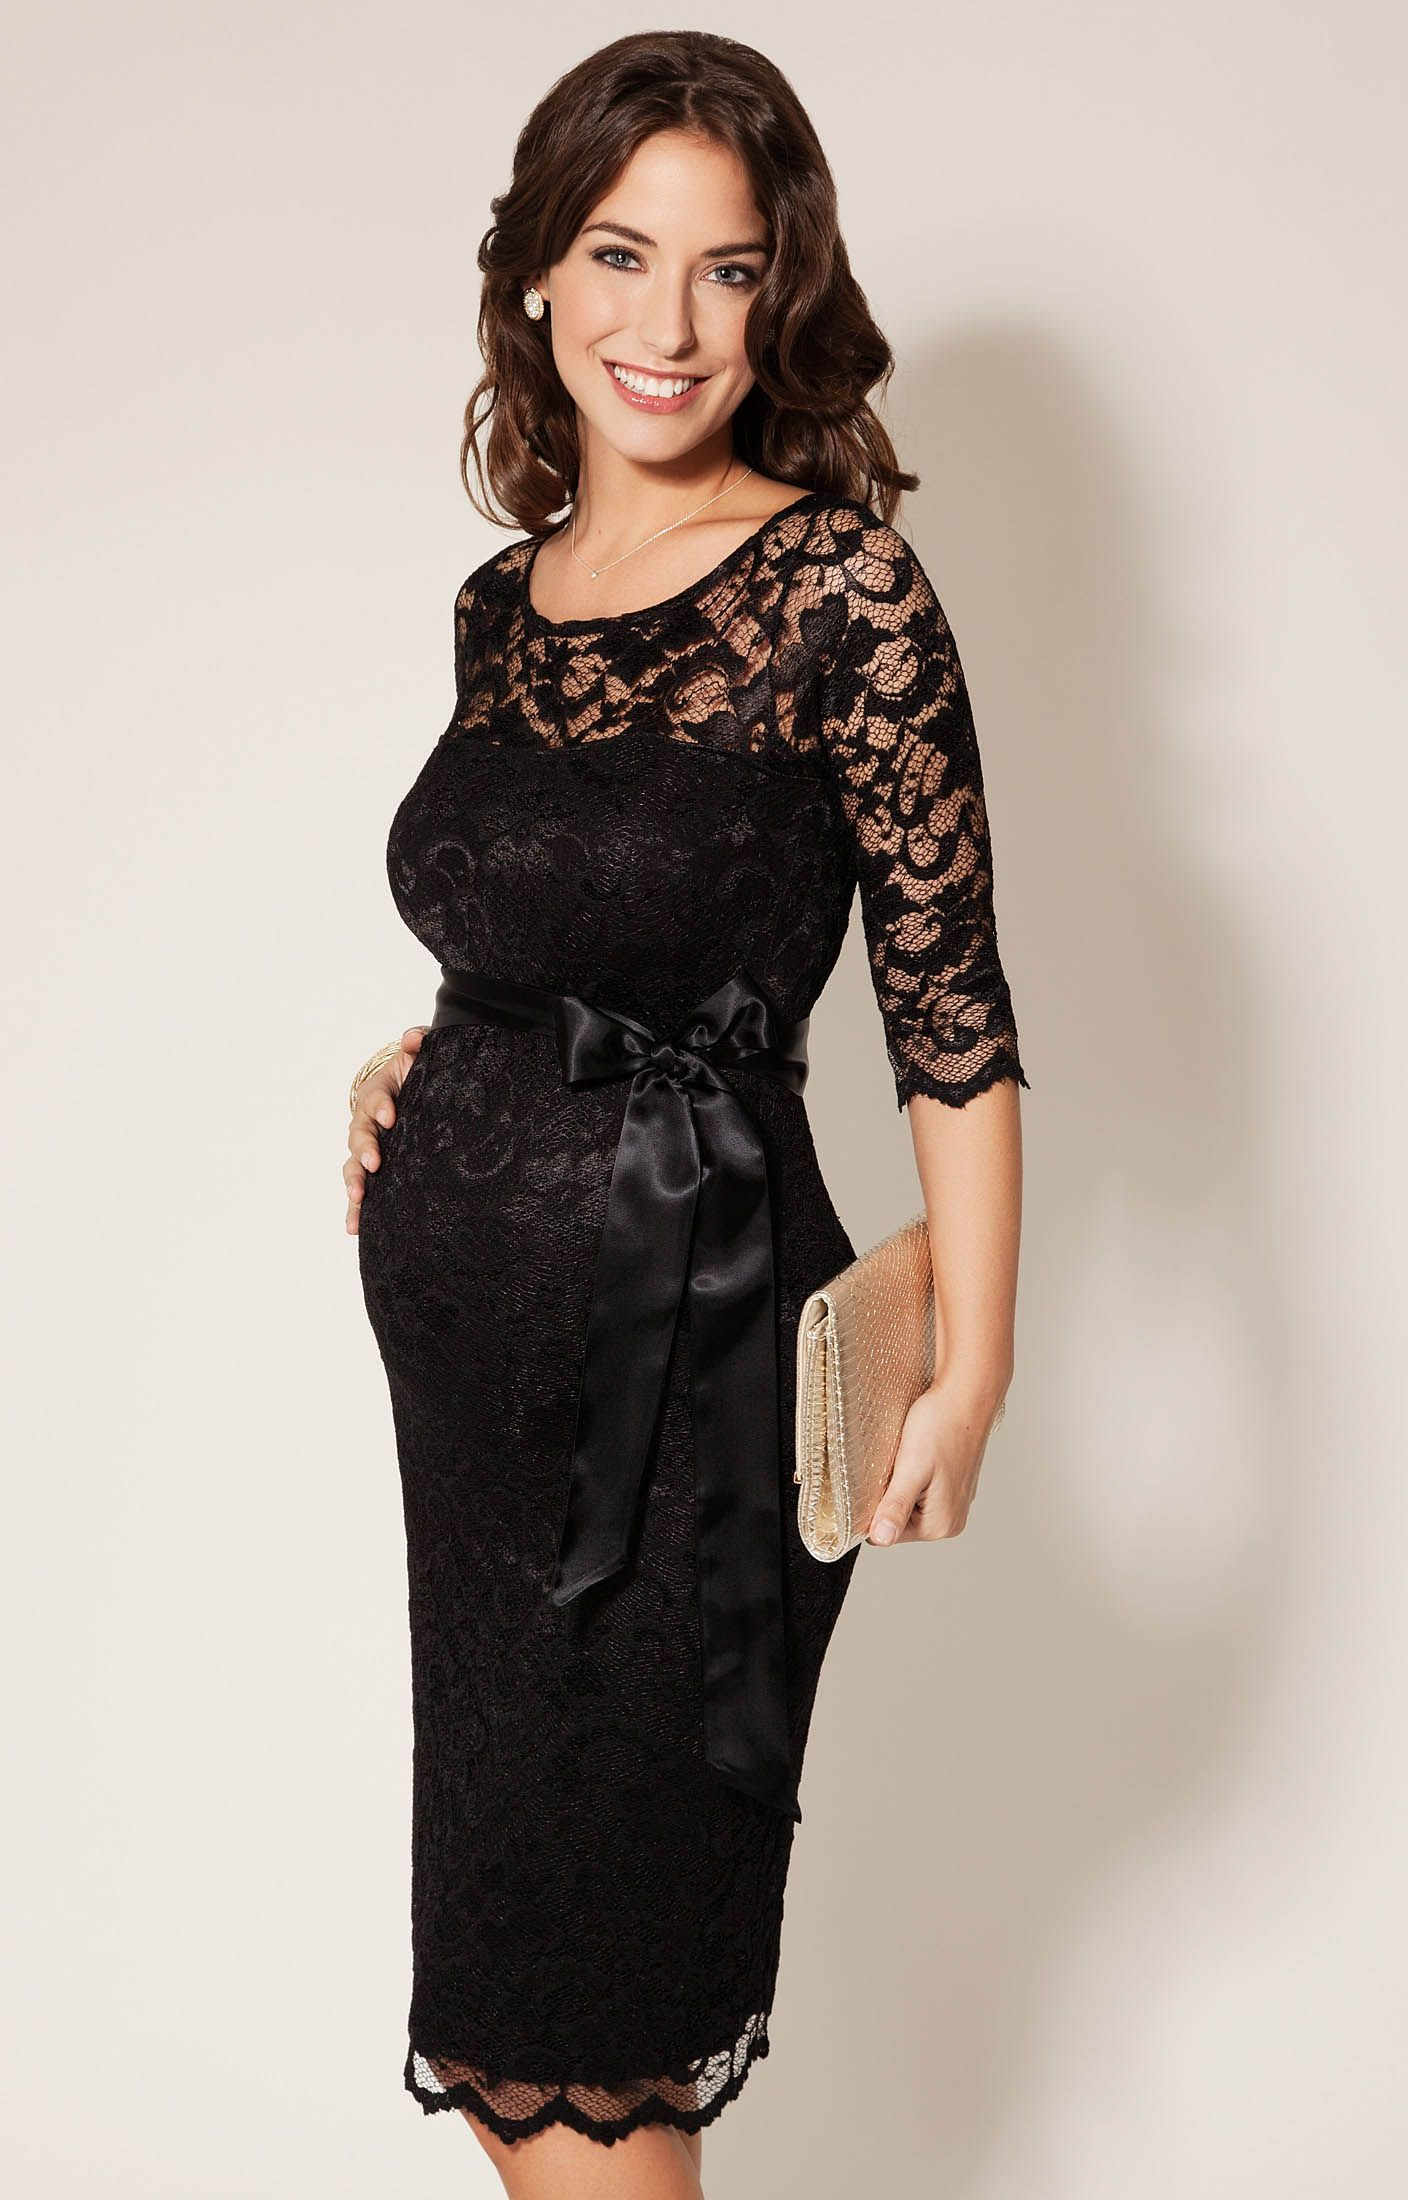 0463f7f1ca13b The dramatic, sexy edge your maternity wardrobe craves - our highly coveted  Amelia maternity dress now comes in jet black.